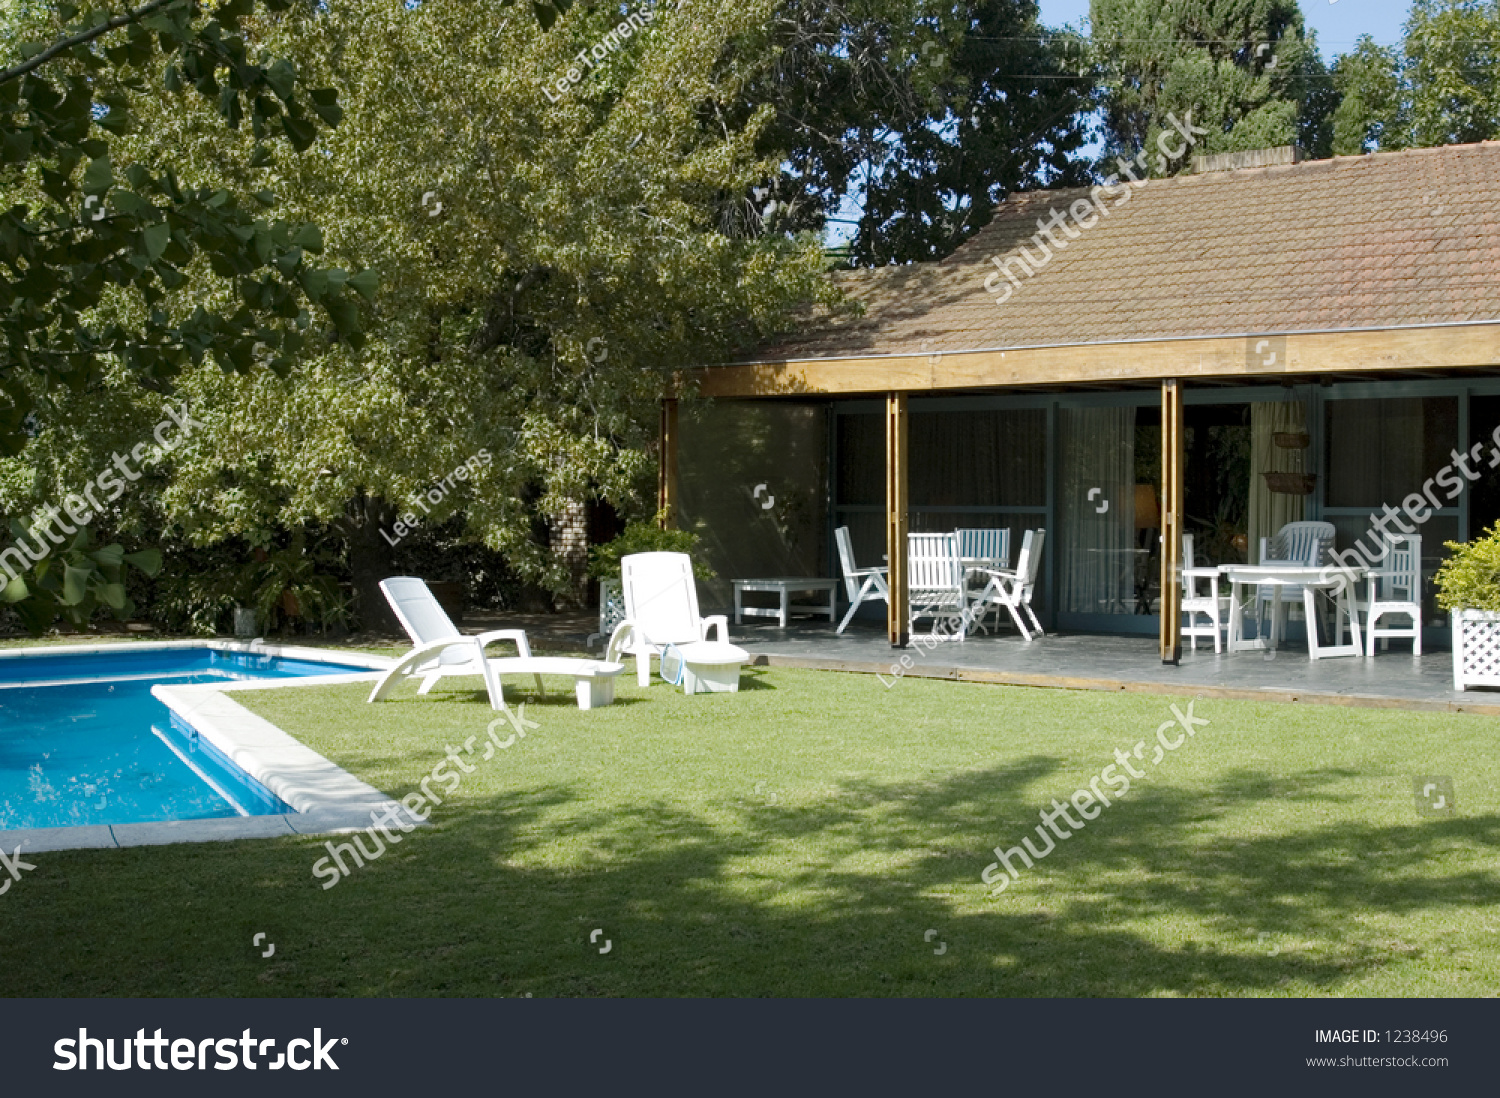 Neat Suburban Garden Swimming Pool Stock Photo 1238496 Shutterstock